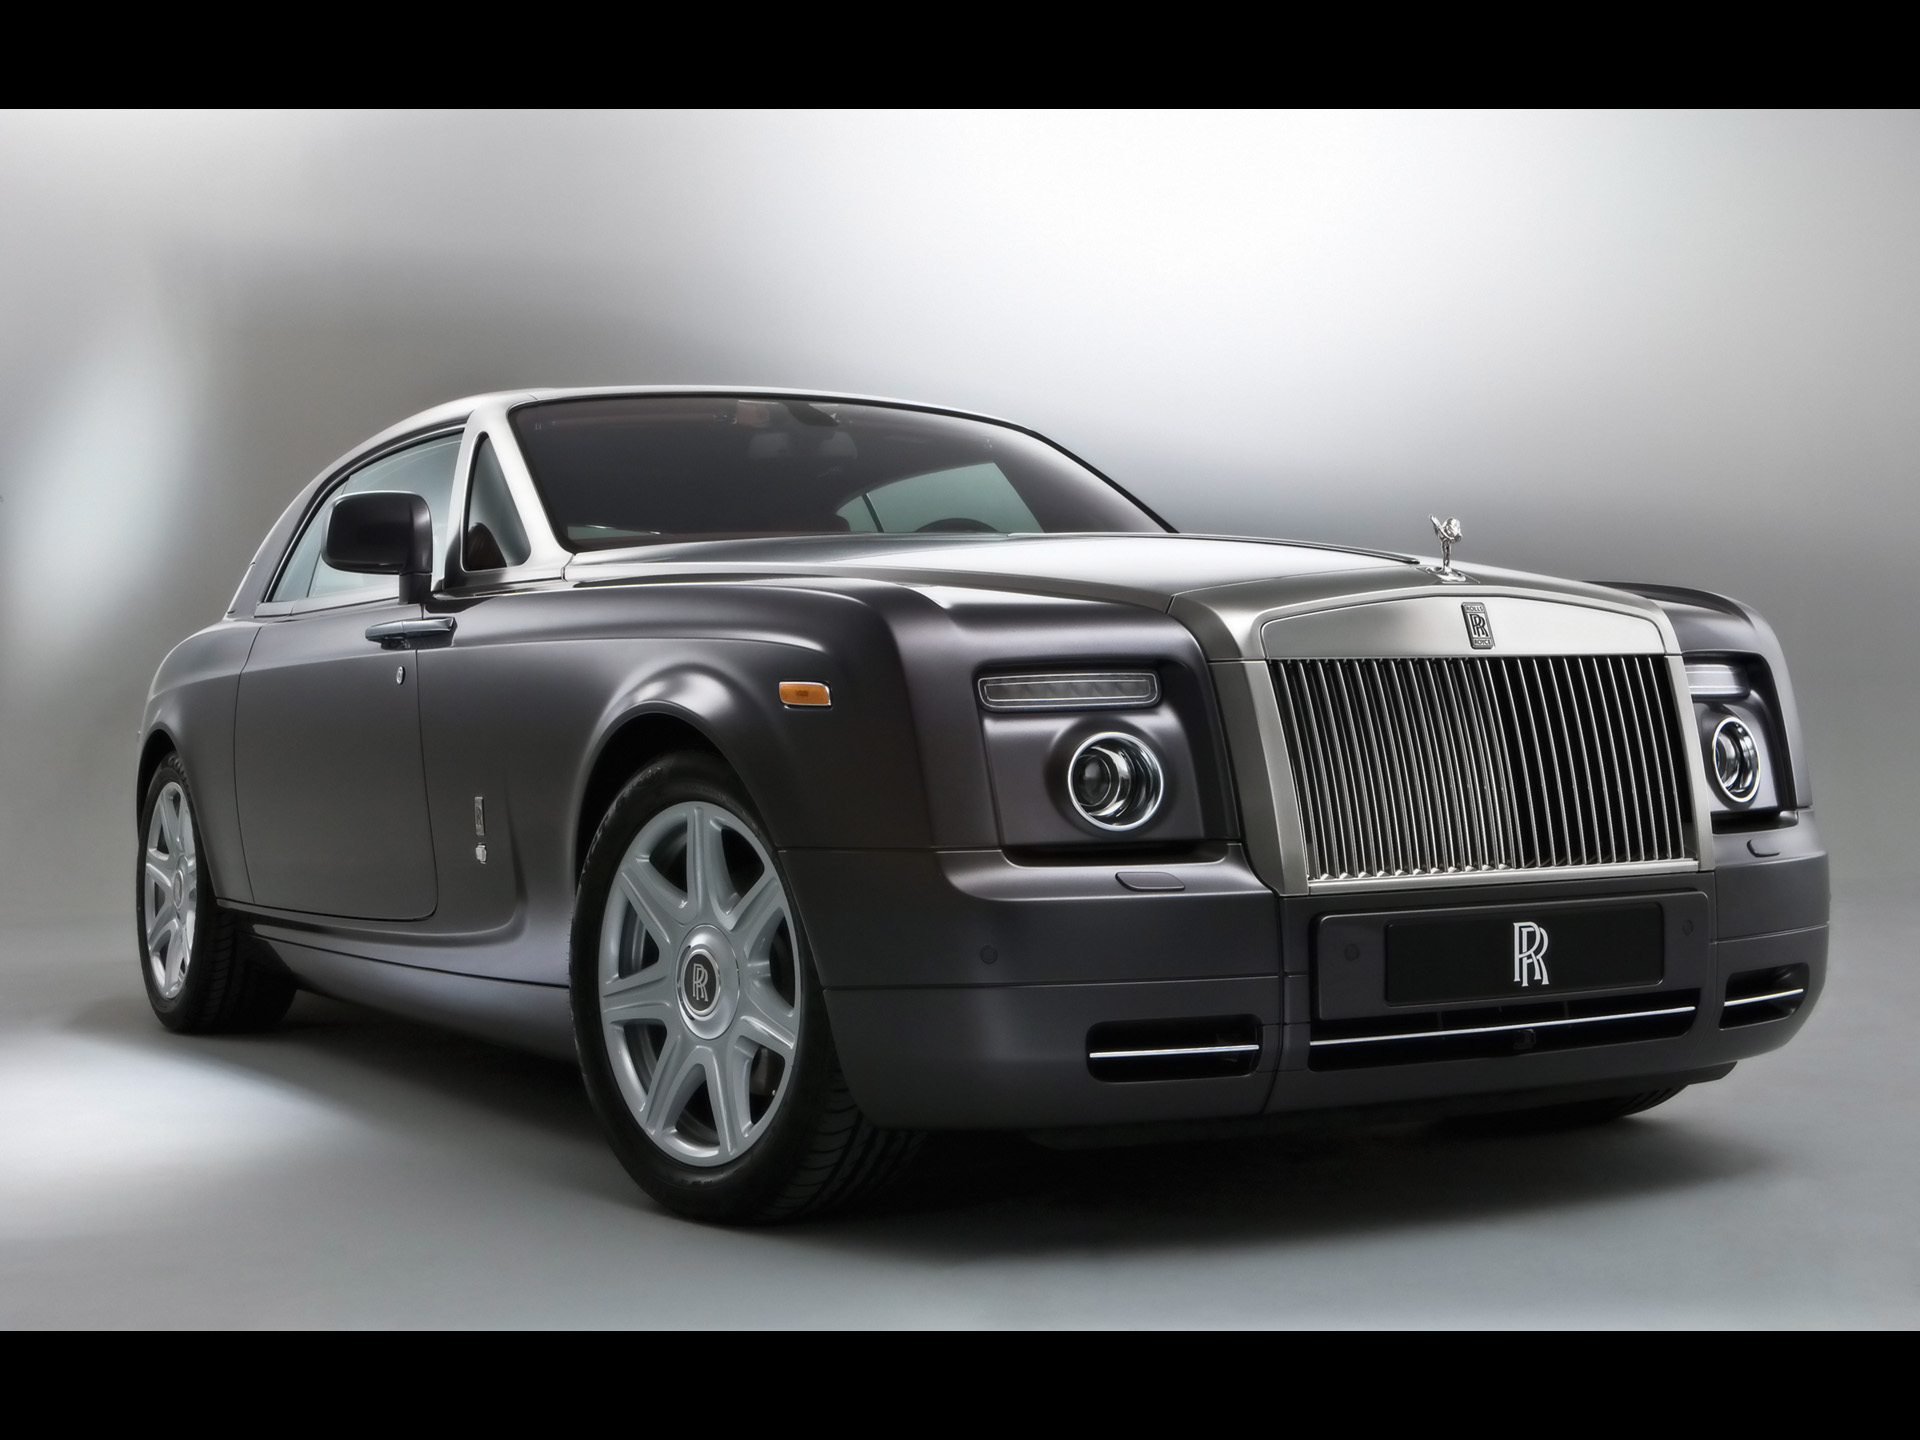 Rolls-Royce Phantom Coupe black #3